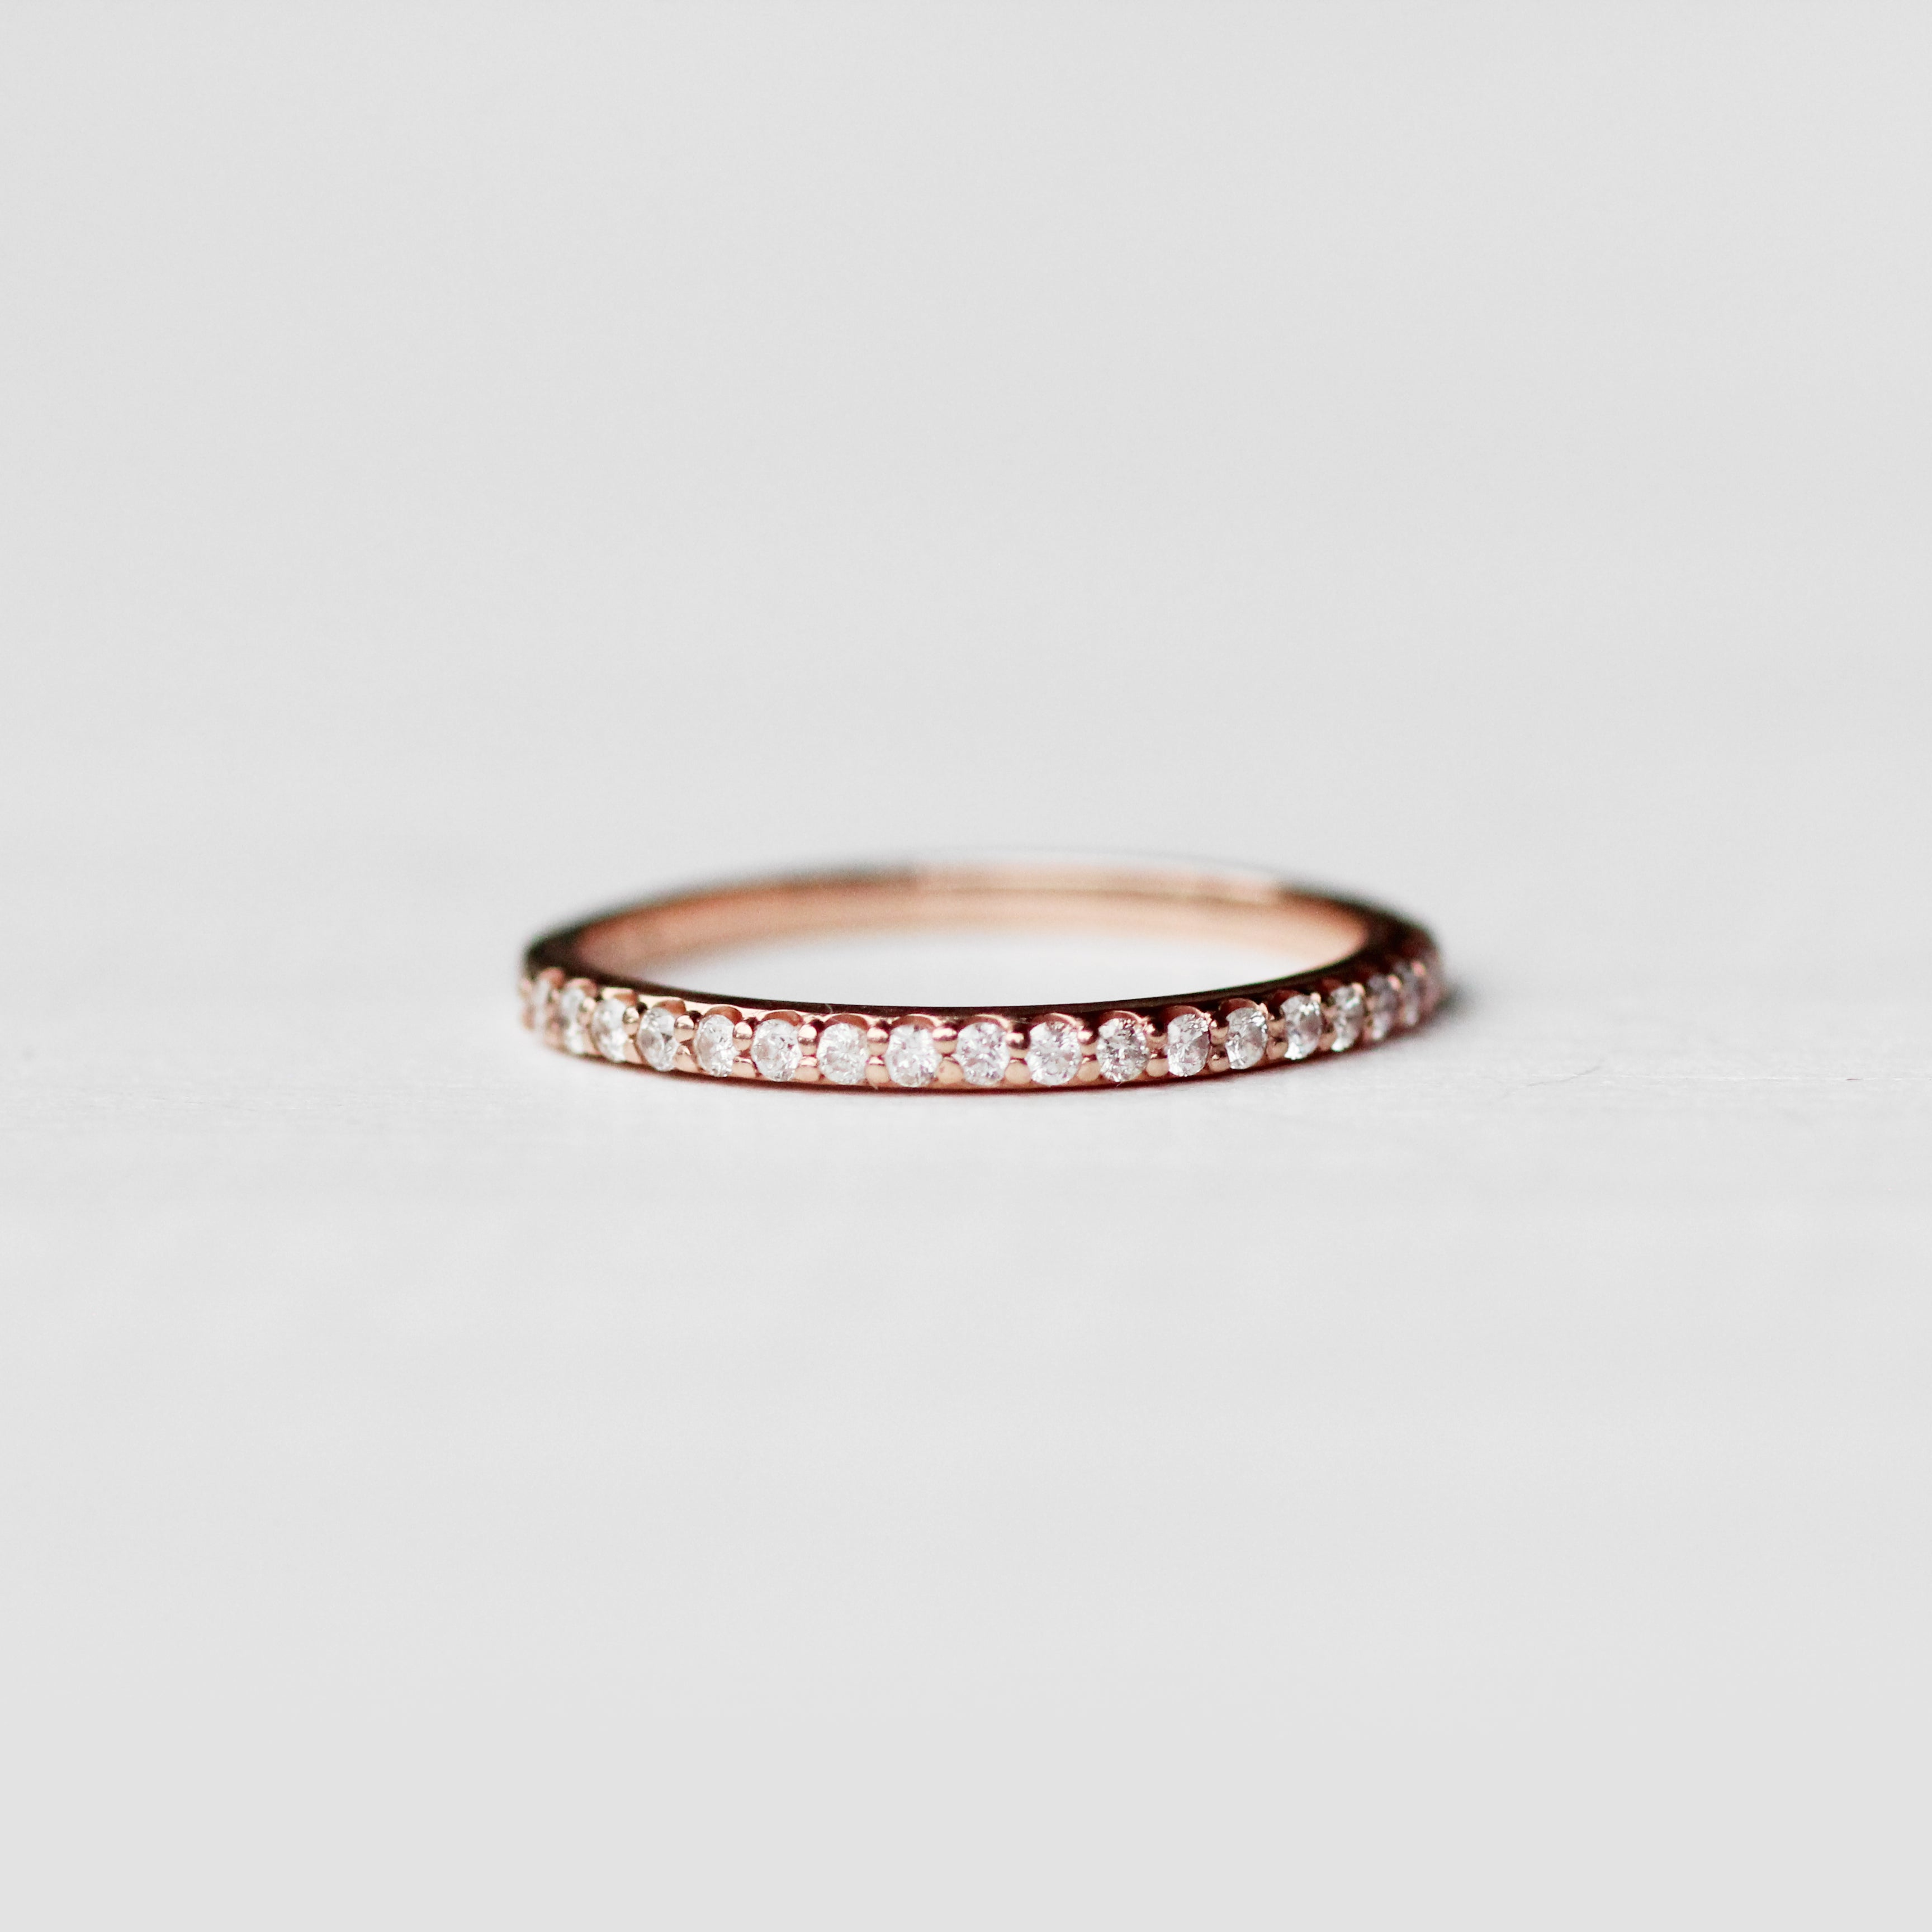 Constance - Pave set, minimal diamond wedding stacking band - Celestial Diamonds ® by Midwinter Co.